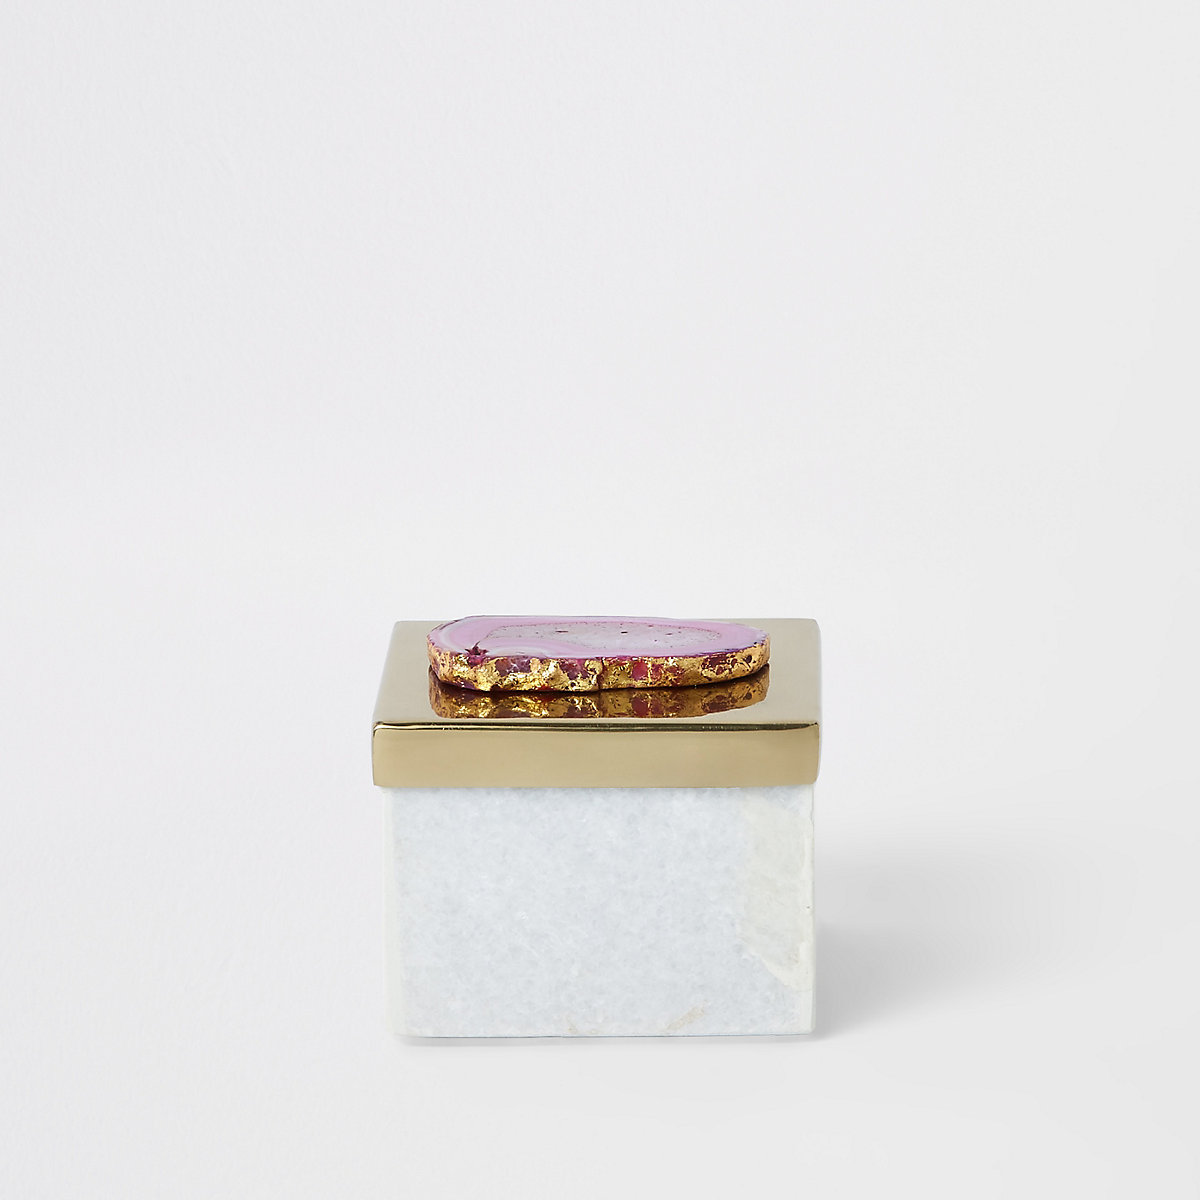 Marble storage box with agate metal lid